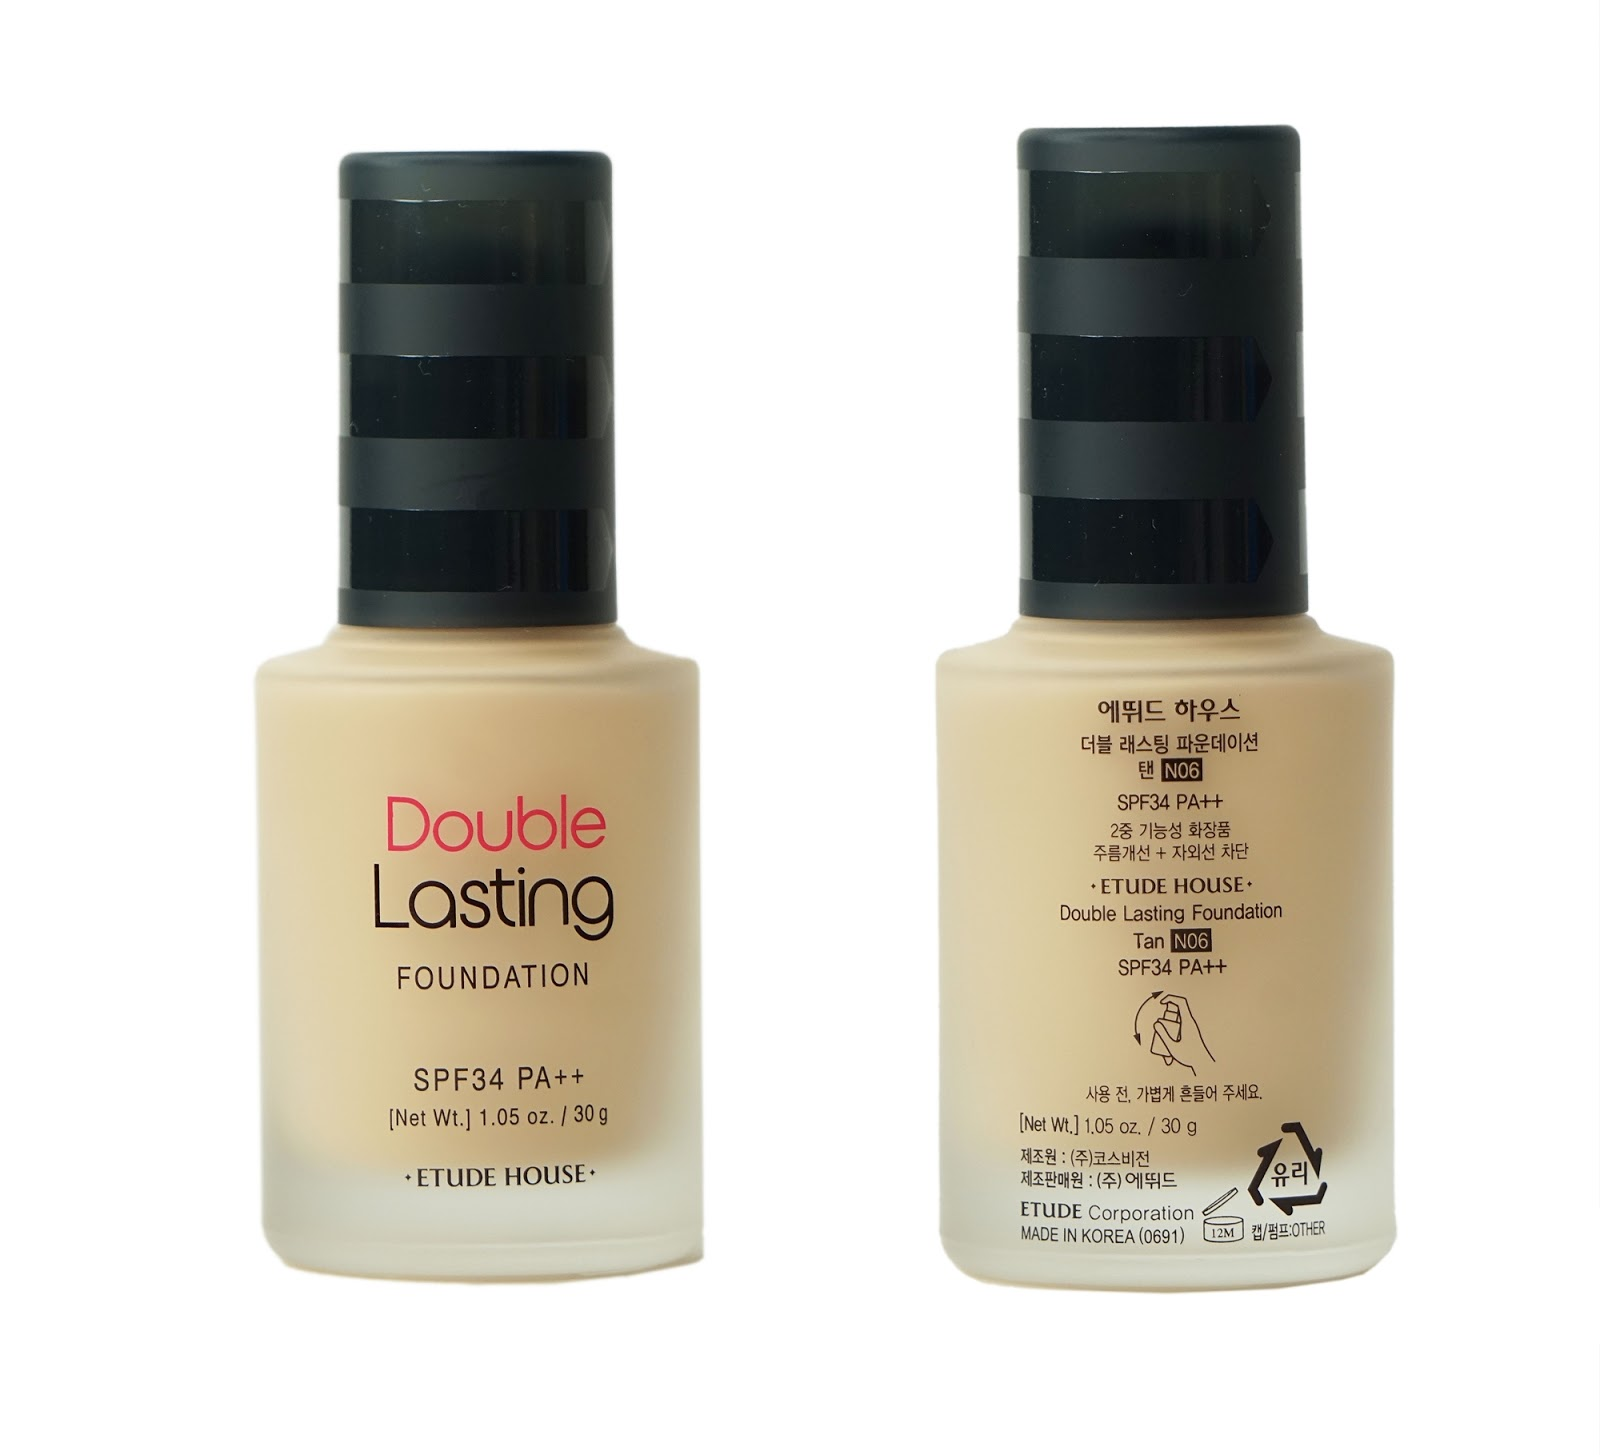 Etude House Double Lasting Foundation SPF34/PA++ Review